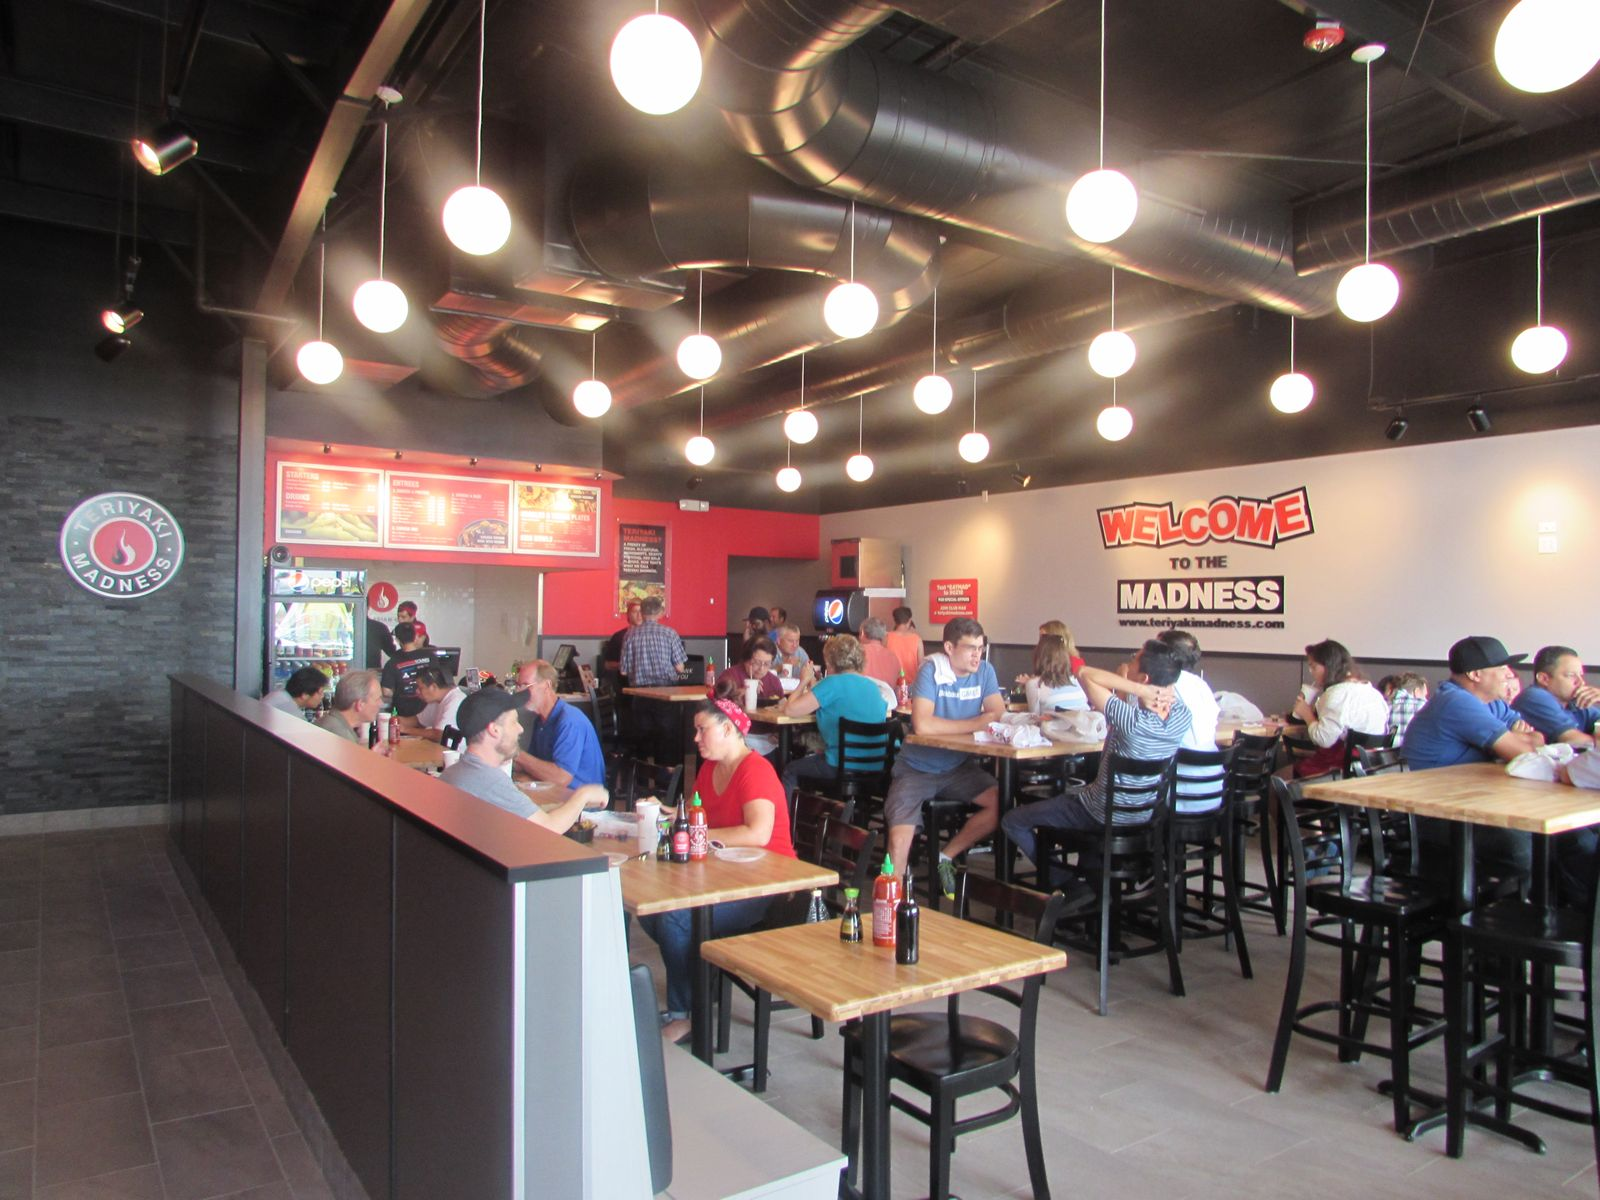 Teriyaki Madness to Celebrate Opening in The Woodlands, Texas on September 23